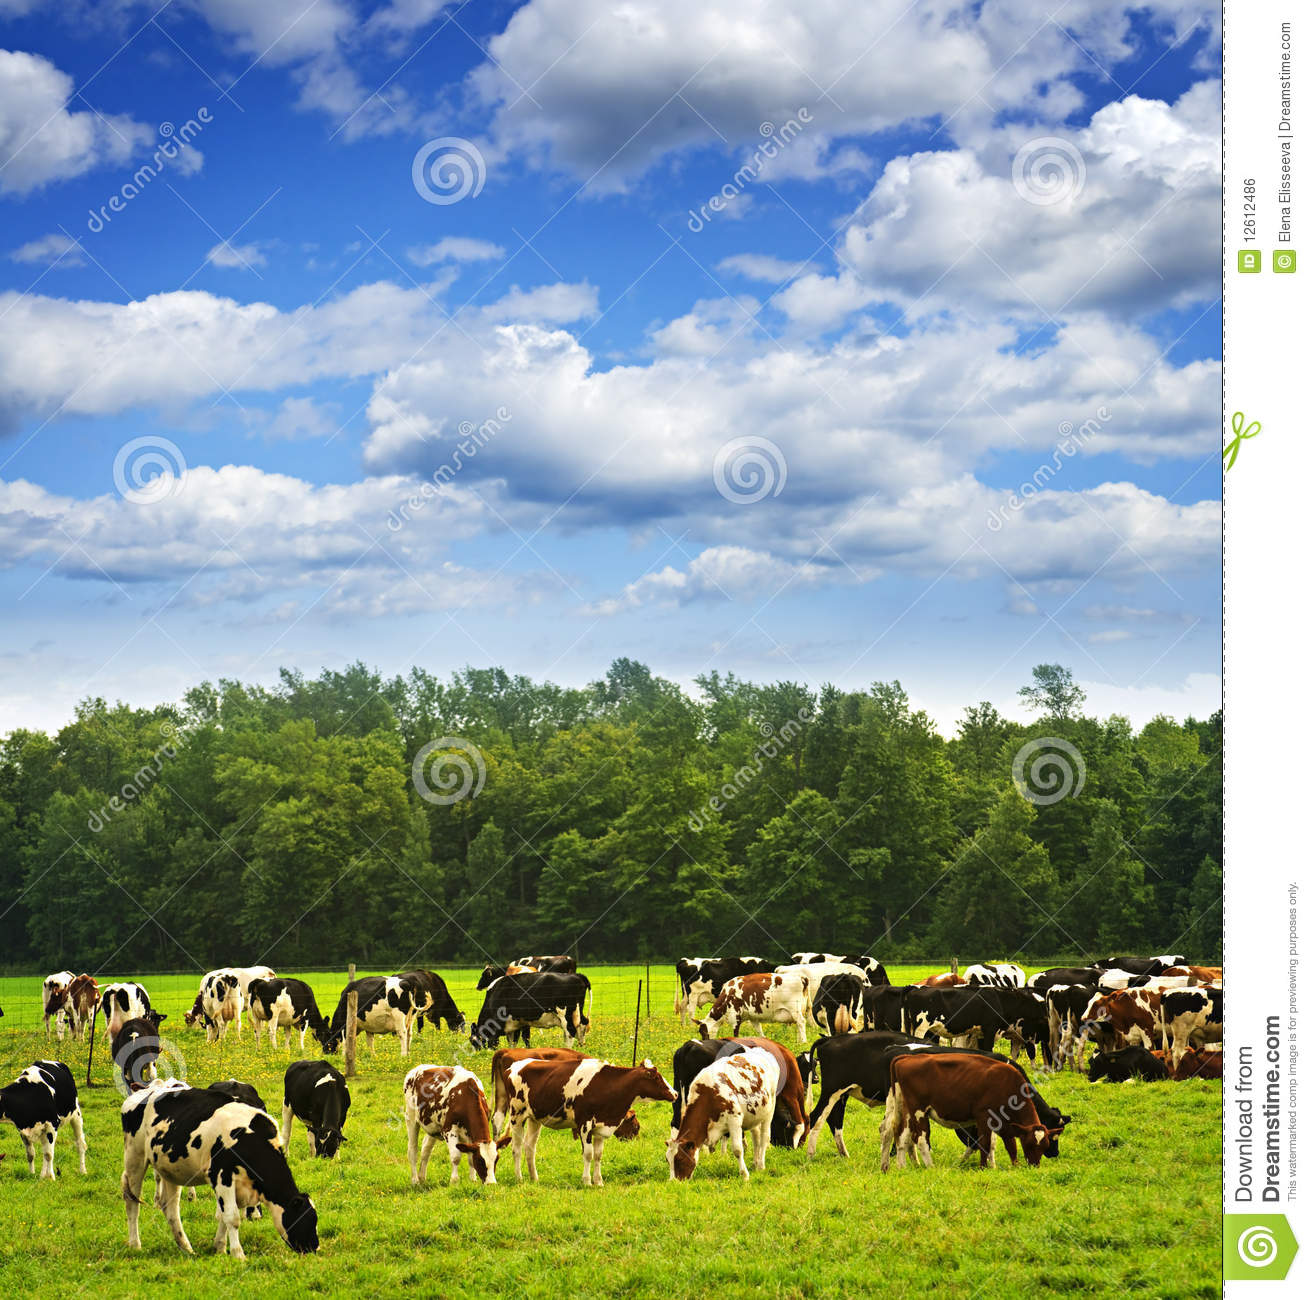 Cows Website Design